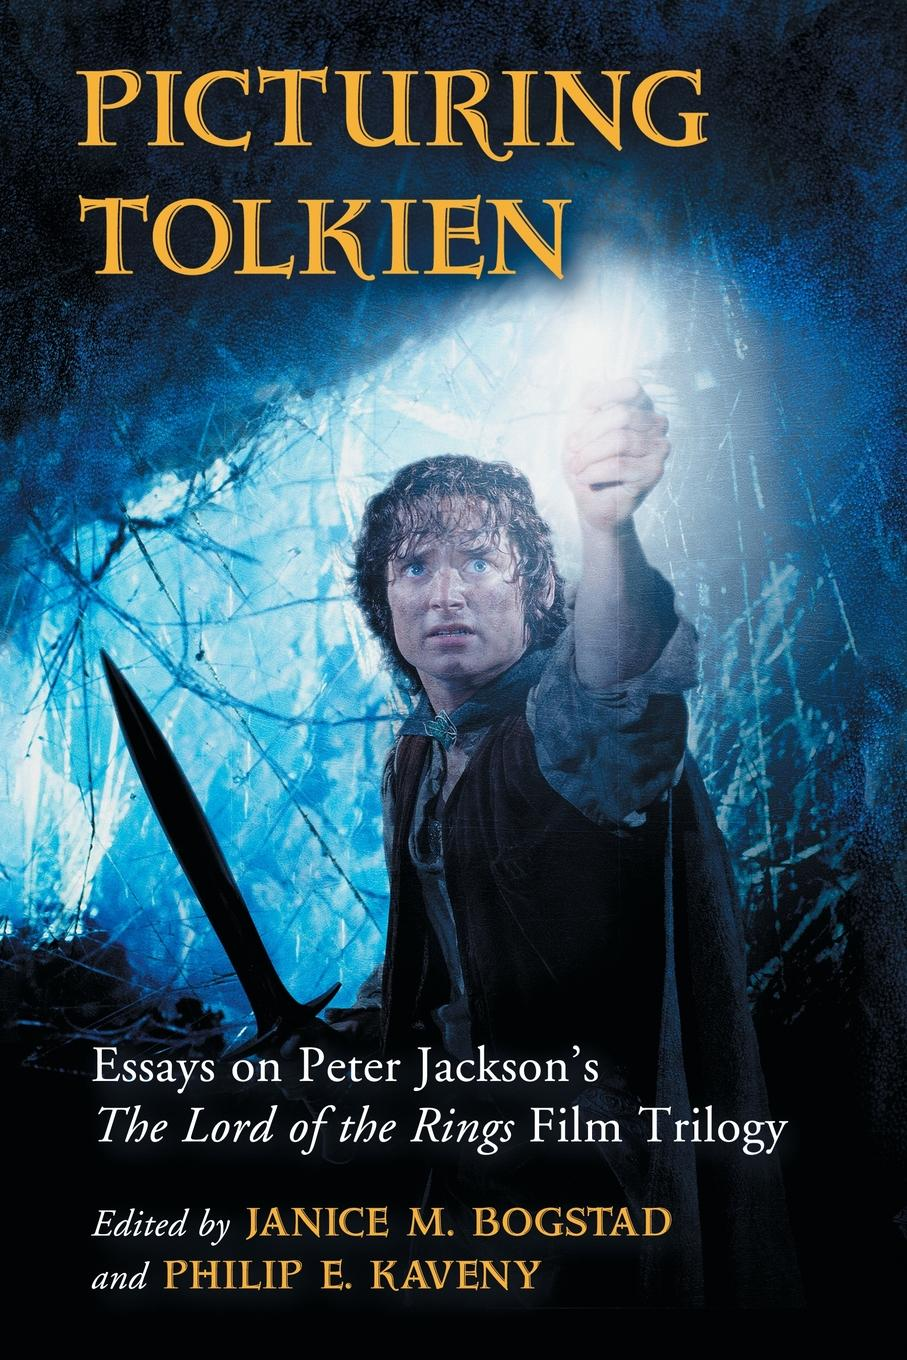 Picturing Tolkien. Essays on Peter Jackson.s the Lord of the Rings Film Trilogy саундтрек саундтрекhoward shore the lord of the rings the return of the king the complete recordings 6 lp 180 gr